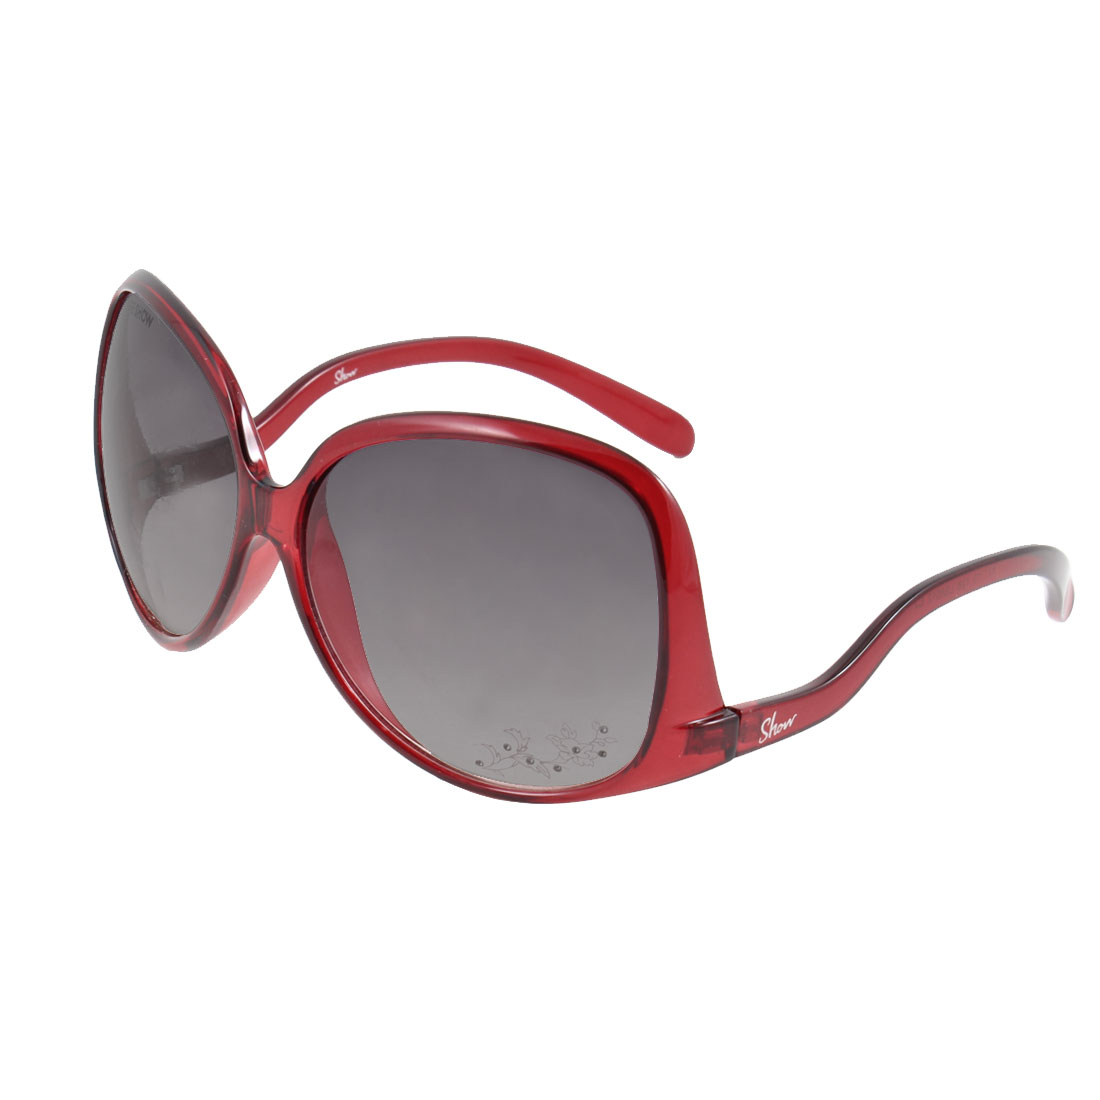 Lady Burgundy Full Frame Waterdrop Shape Lens Leisure Sunglasses Eyewear